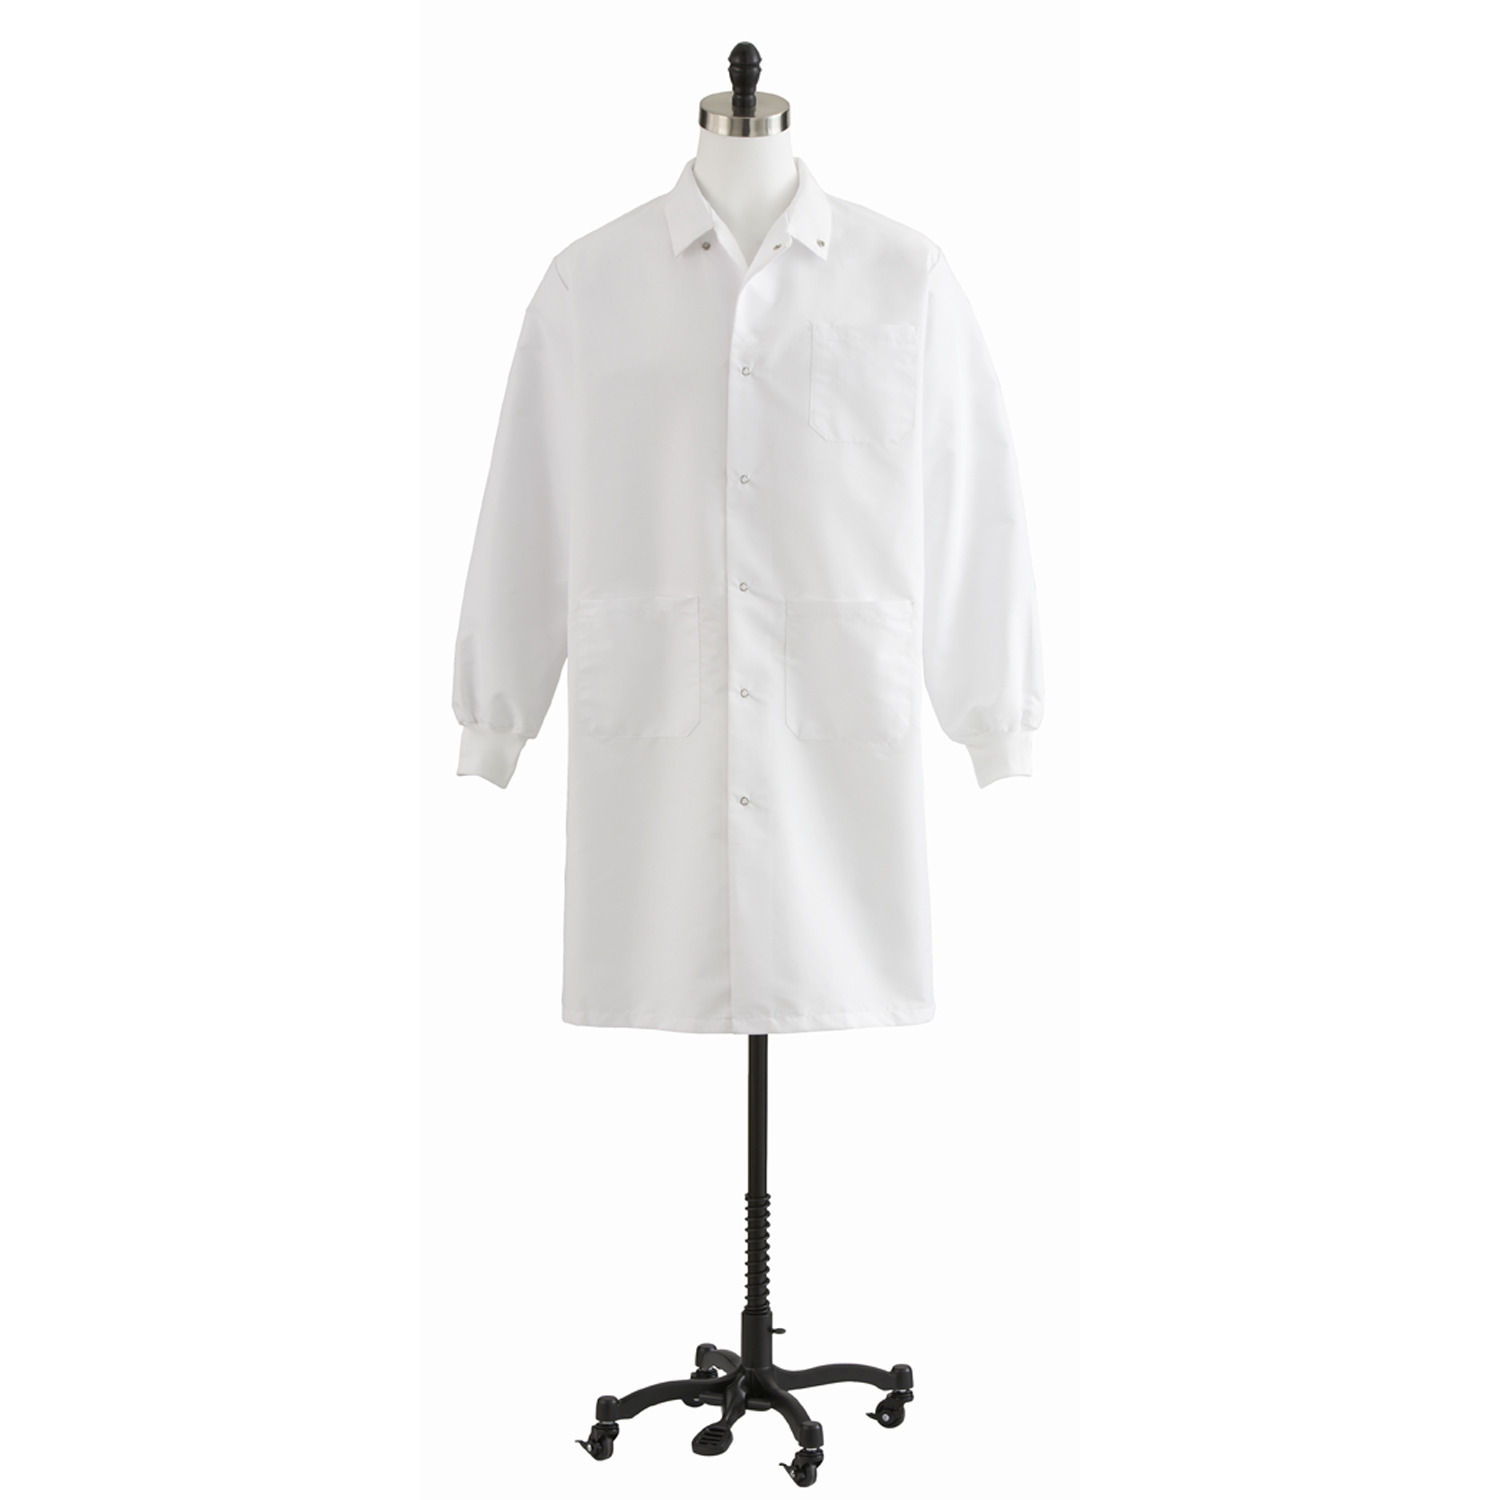 87026 Unisex Knee Length Lab Coat